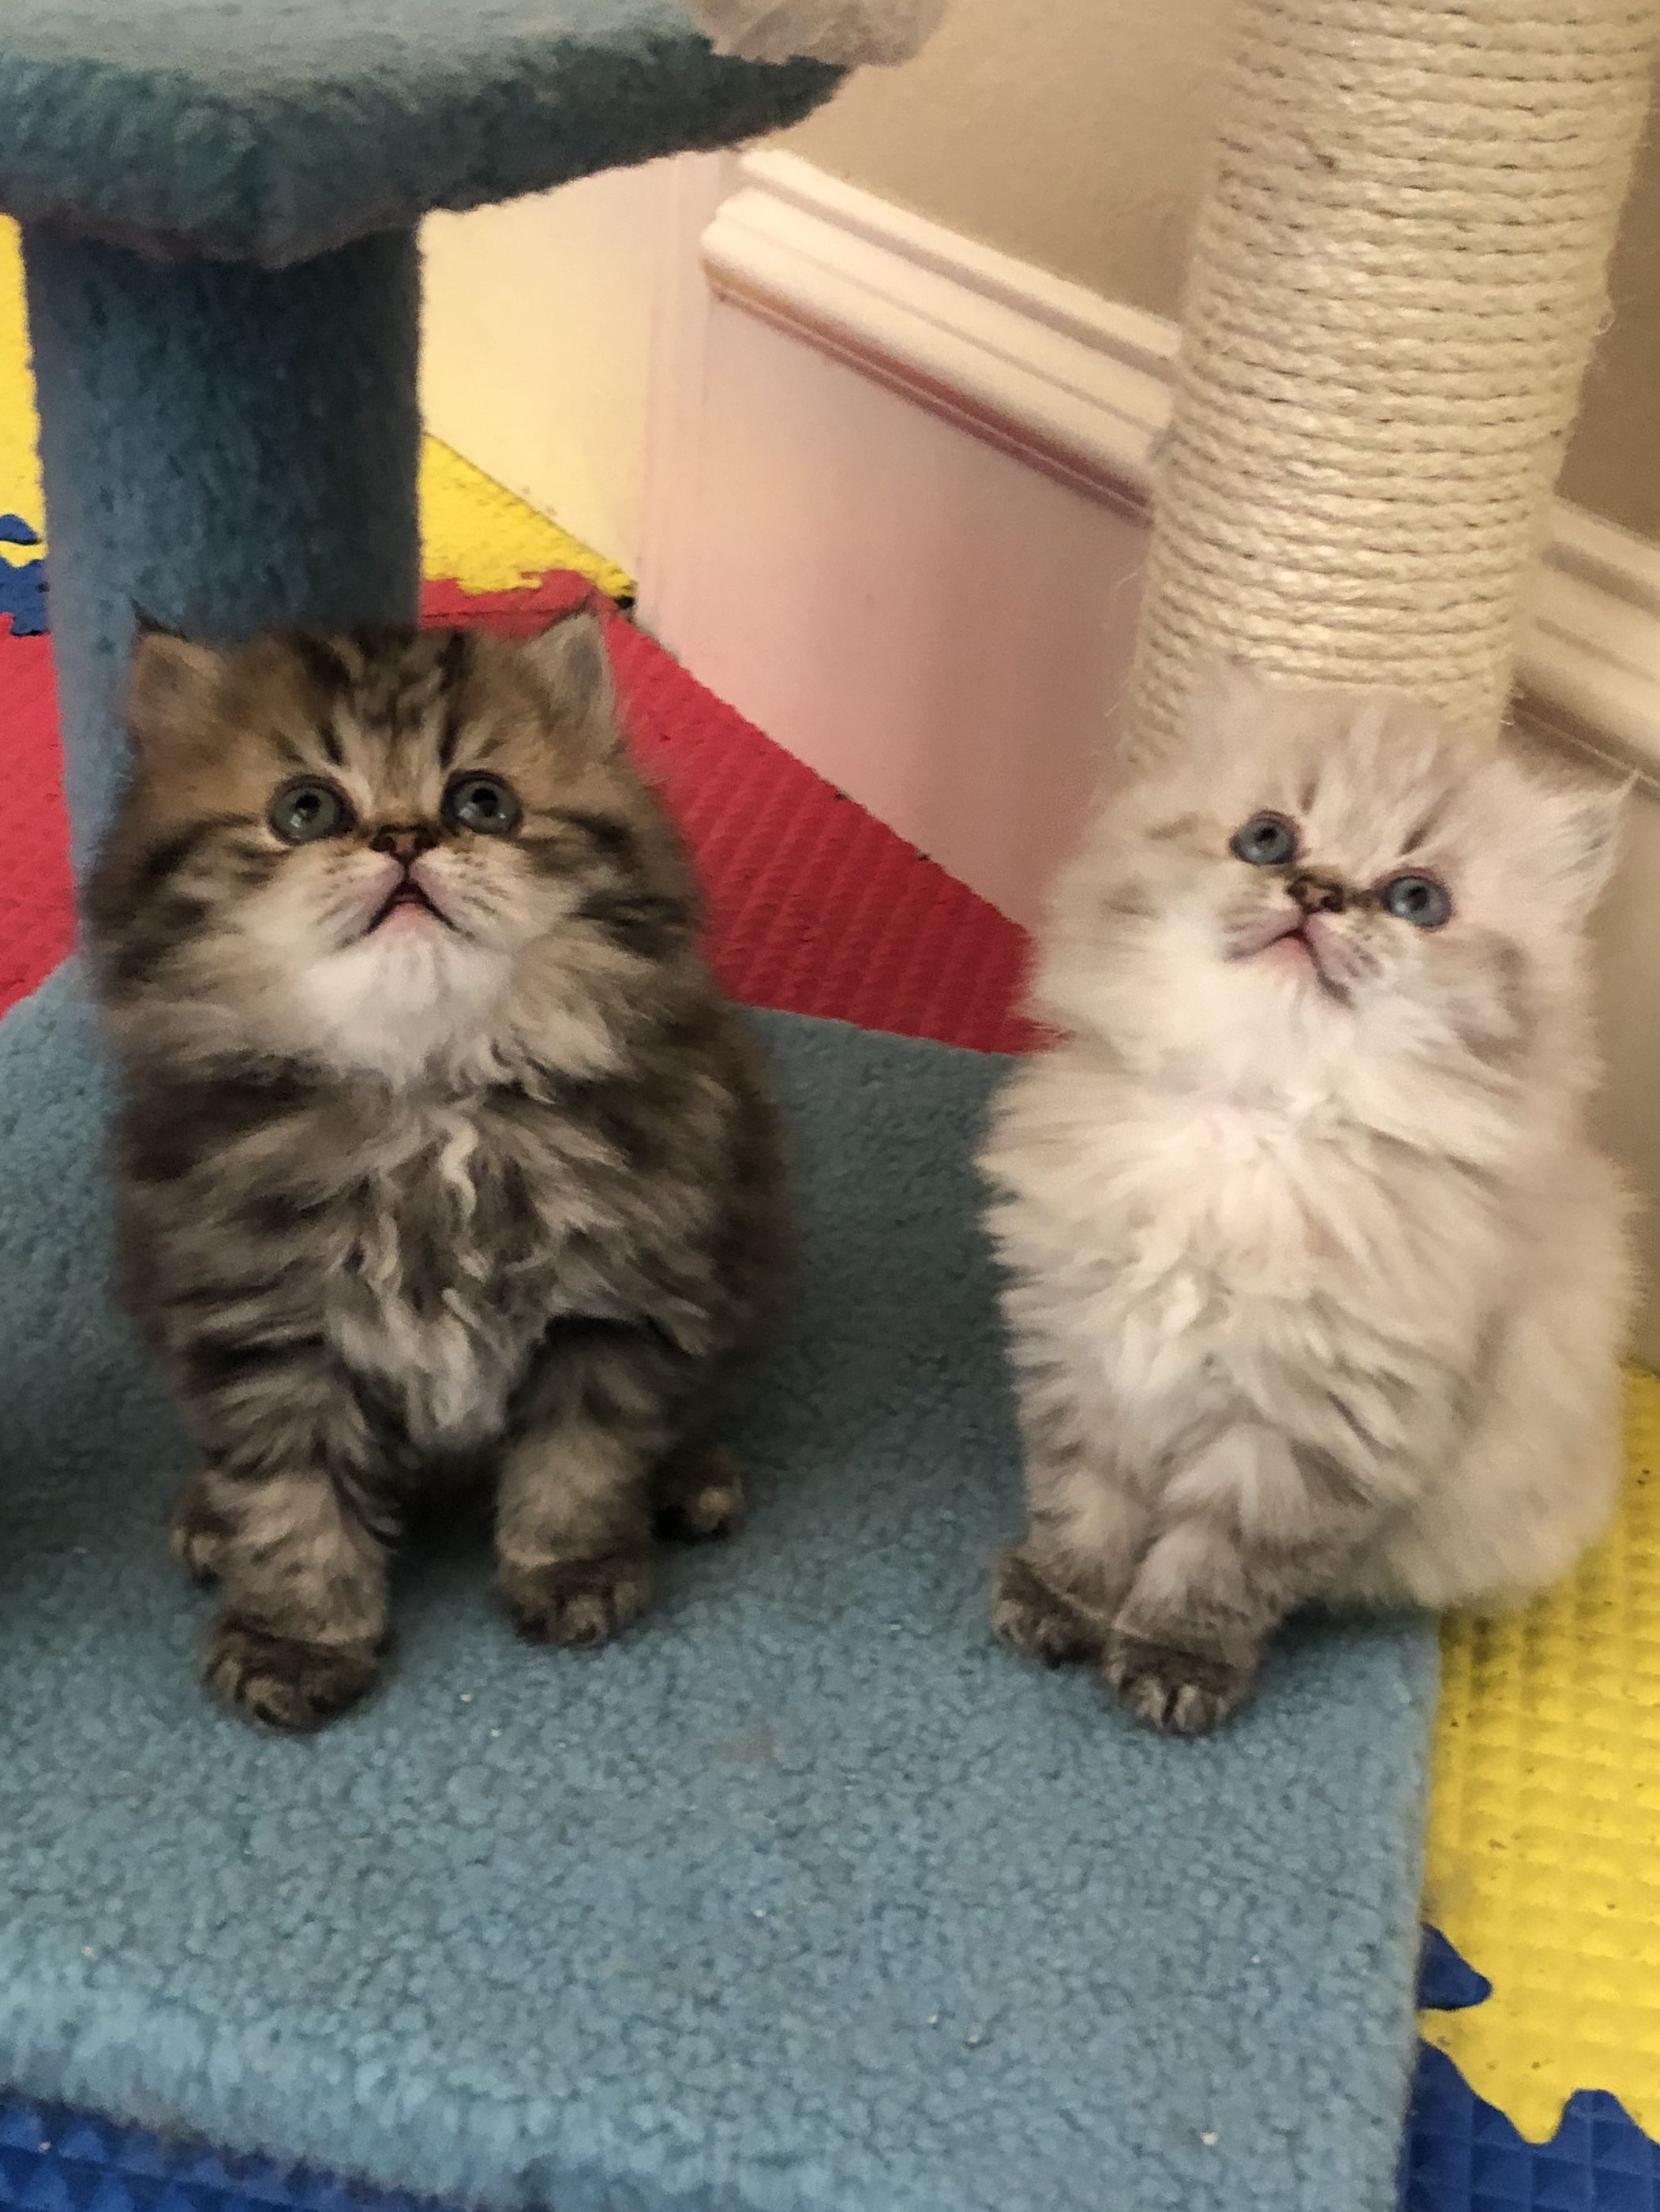 Persiankittenpals Com Sweet Lily And Zac Beautiful Persian Kittens In Texas For Sale Persian Kittens For Sale Kittens Persian Kittens